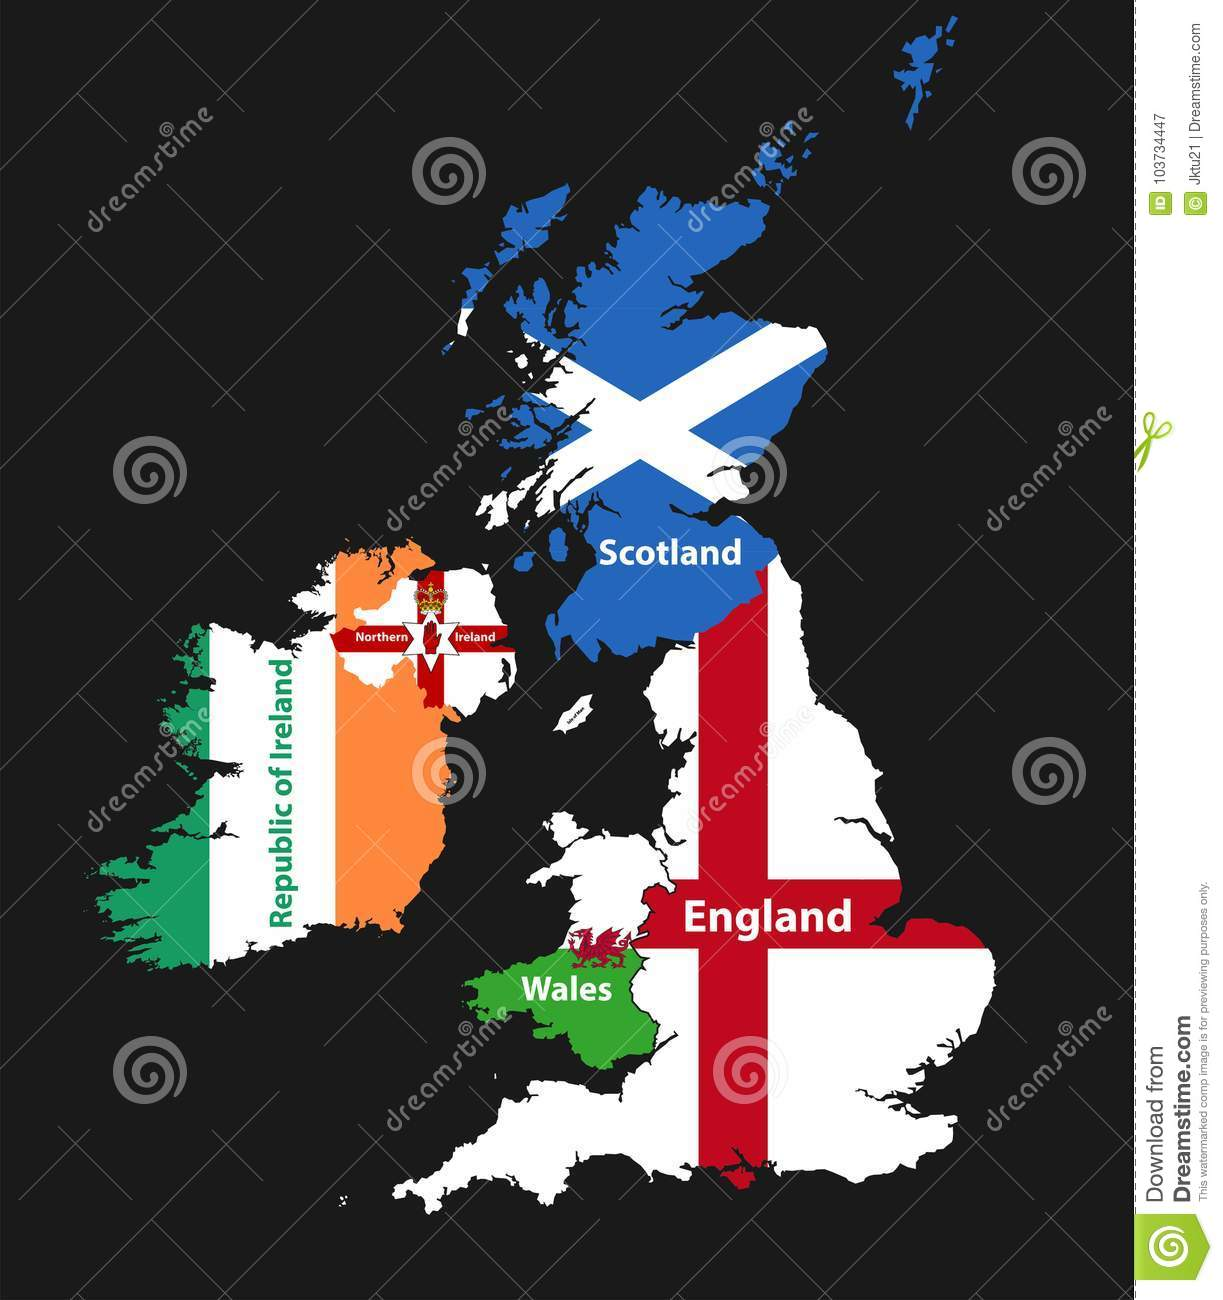 Countries Of British Isles: United KingdomEngland, Scotland ... on map of gibraltar, map of southern ireland, map of county mayo, map of austria, map of israel, map of united kingdom, map of scotland, map of england, map of belfast, map of wales, map of ireland counties, map of afghanistan, map of europe, map of ballybofey, map of dublin, map of giant's causeway, map of uk, map of ireland map, map of ulster, map of us and ireland,